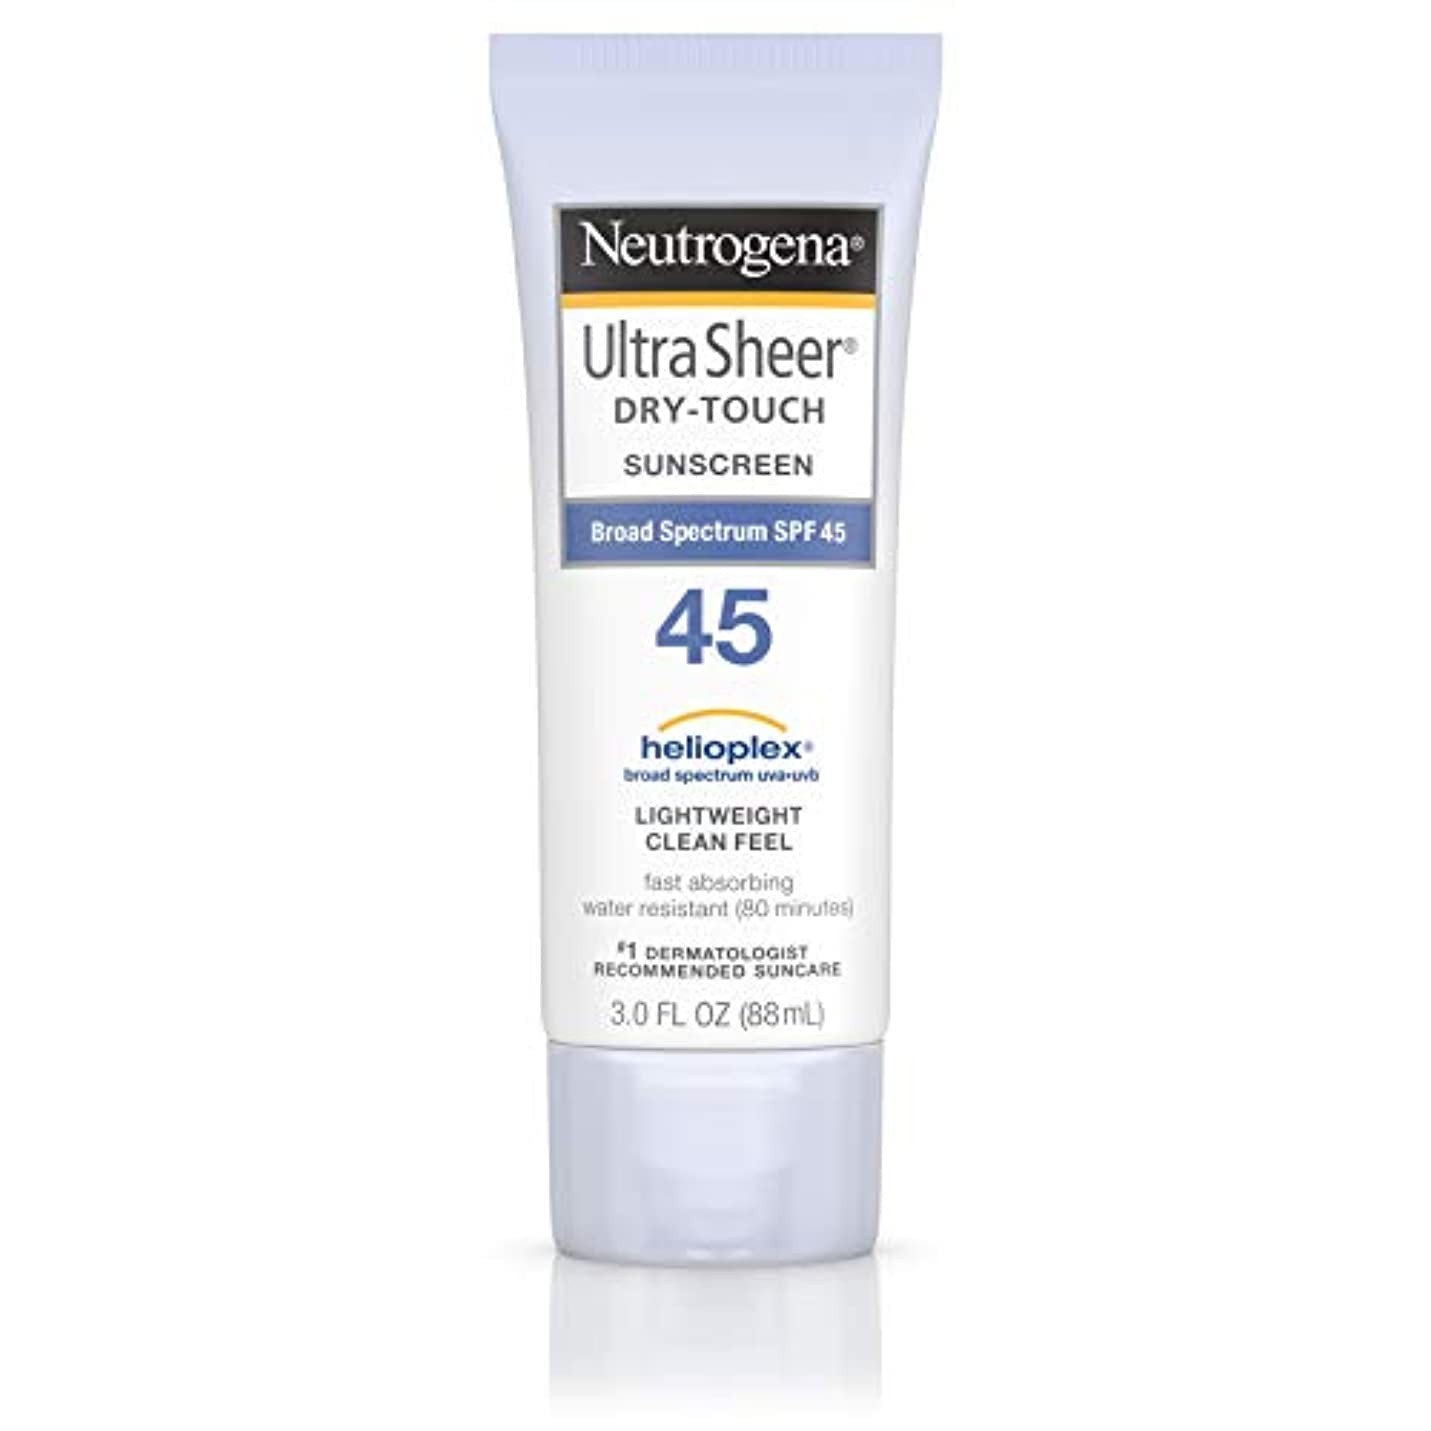 代理人タップ因子海外直送品 Neutrogena Neutrogena Ultra Sheer Dry-Touch Sunblock Spf 45【並行輸入品】